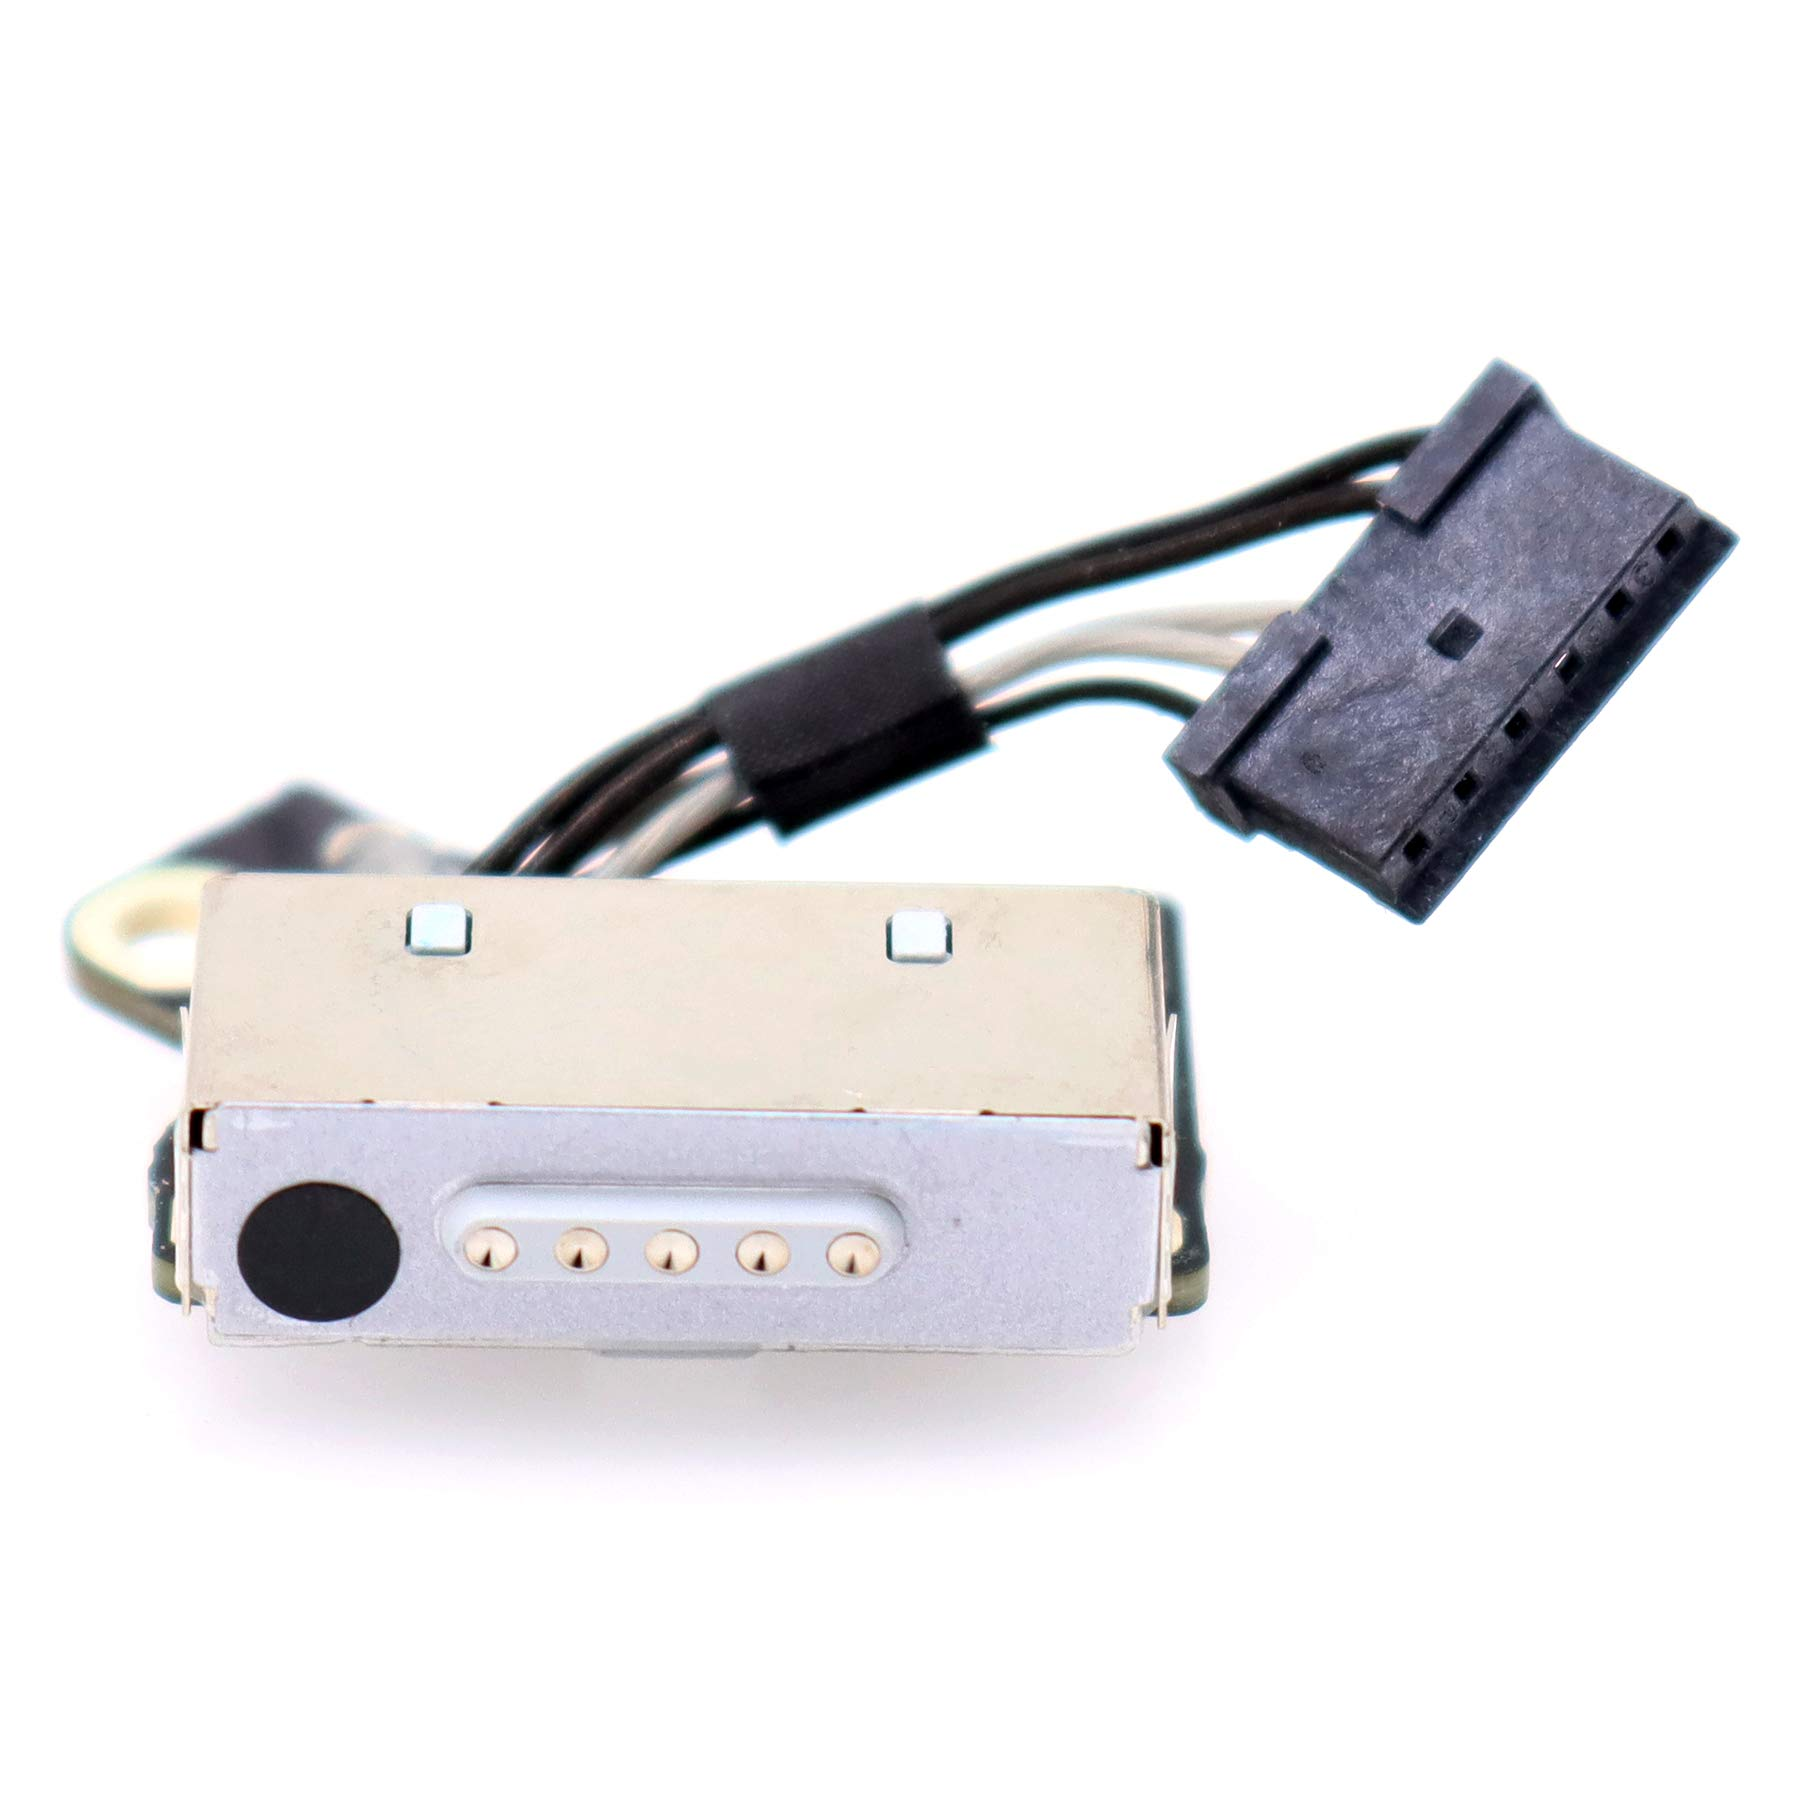 DC Power Jack para MacBook Pro A1398 2012 2013 2014 2015 820